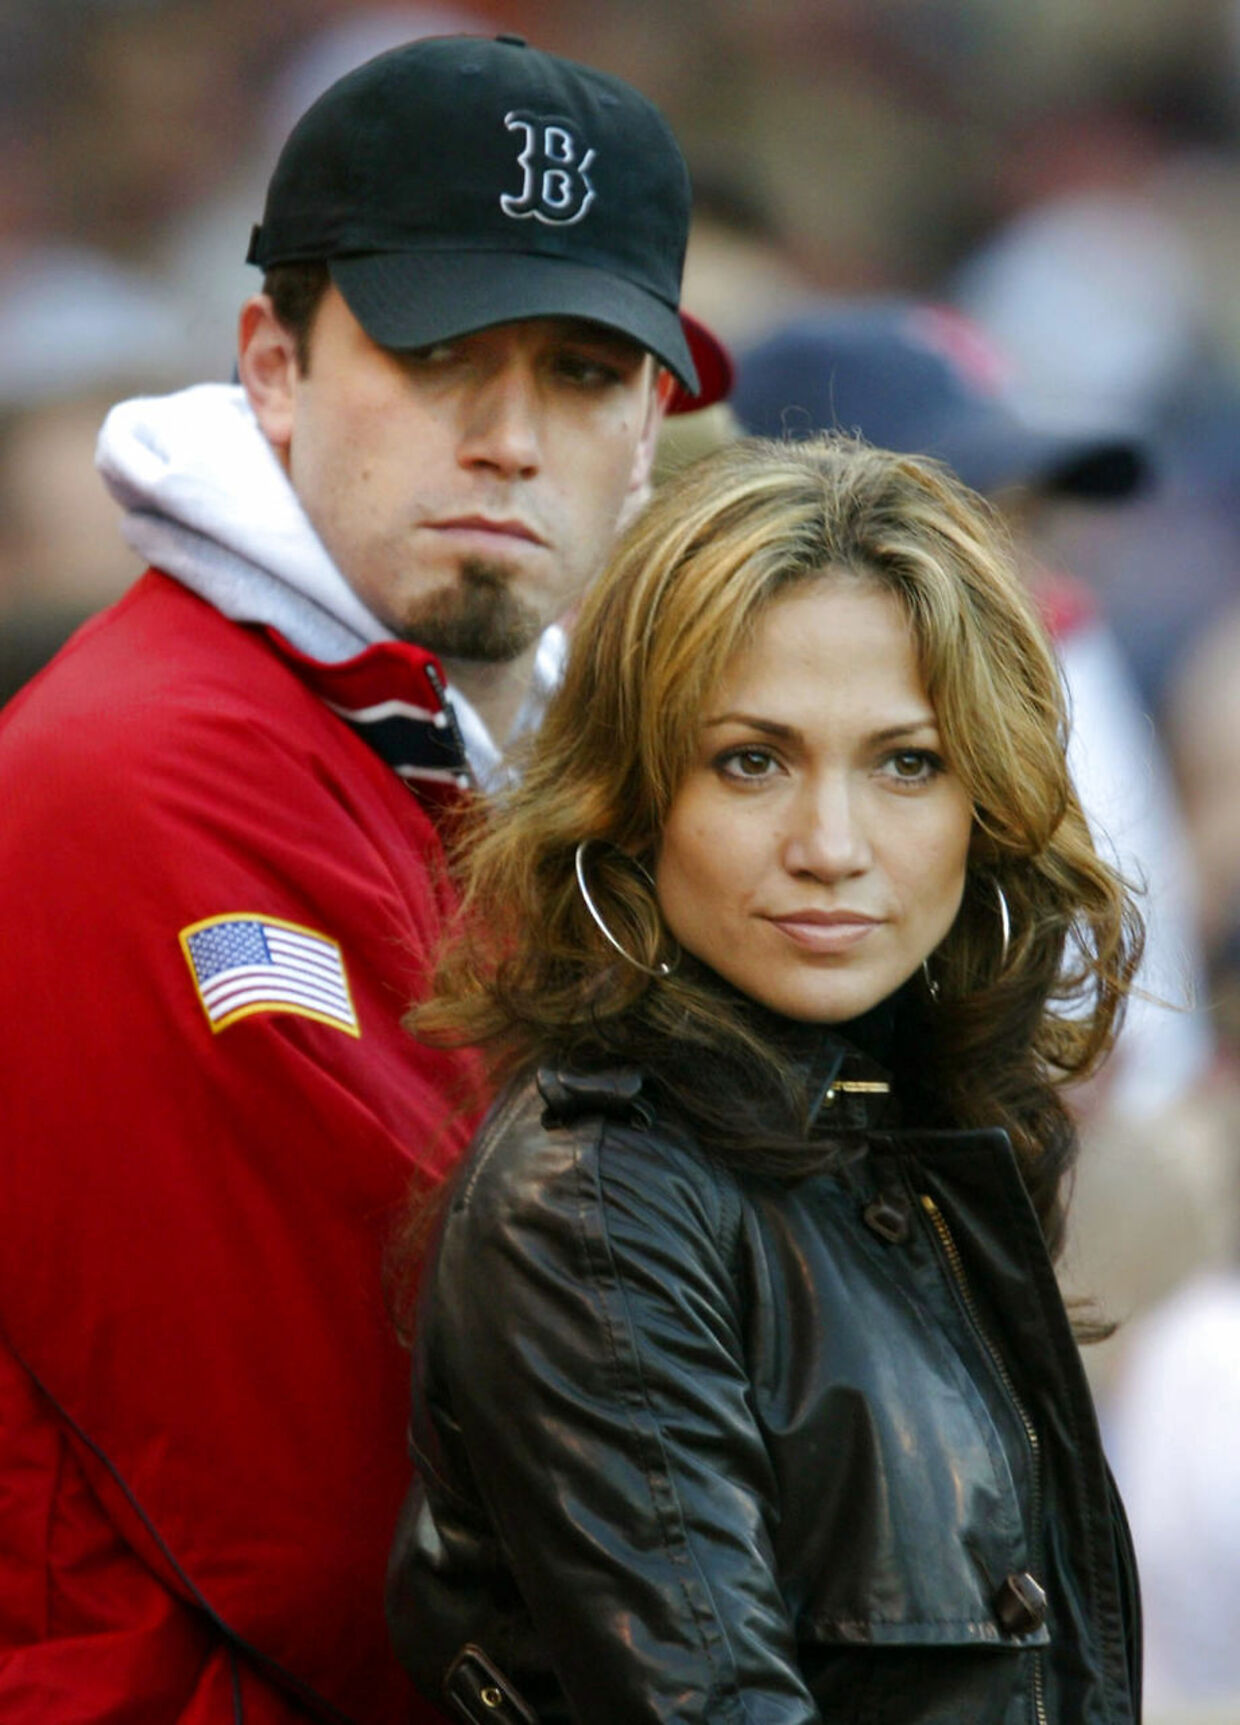 File ntertainers Jennifer Lopez and Ben Affleck are seen during an American League Championship series baseball game at Boston's Fenway Park, on October 11, 2003. The much ballyhooed engagement of movie stars Lopez and Affleck has been officially called off, a spokesman for the singer/actress said on January 22, 2004. The celebrity couple were supposed to marry last September but at the last minute called the wedding off, blaming the postponement on the media frenzy their planned nuptials had created. Since then they have been seen together in public many times, although there were widespread rumors that they were splitting up. REUTERS/Mike Segar/FILE